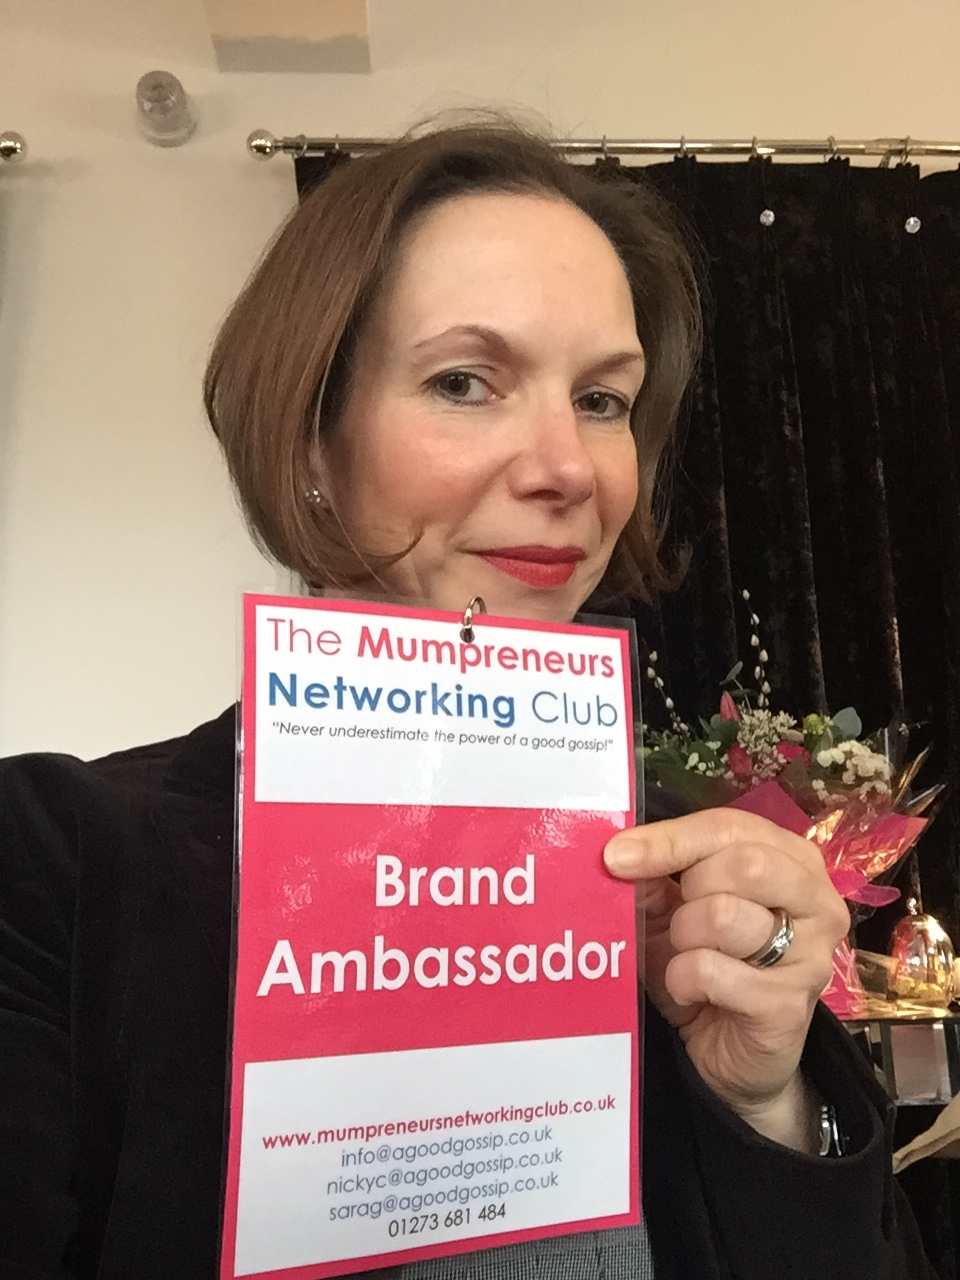 Brand Ambassadors for Mumpreneur